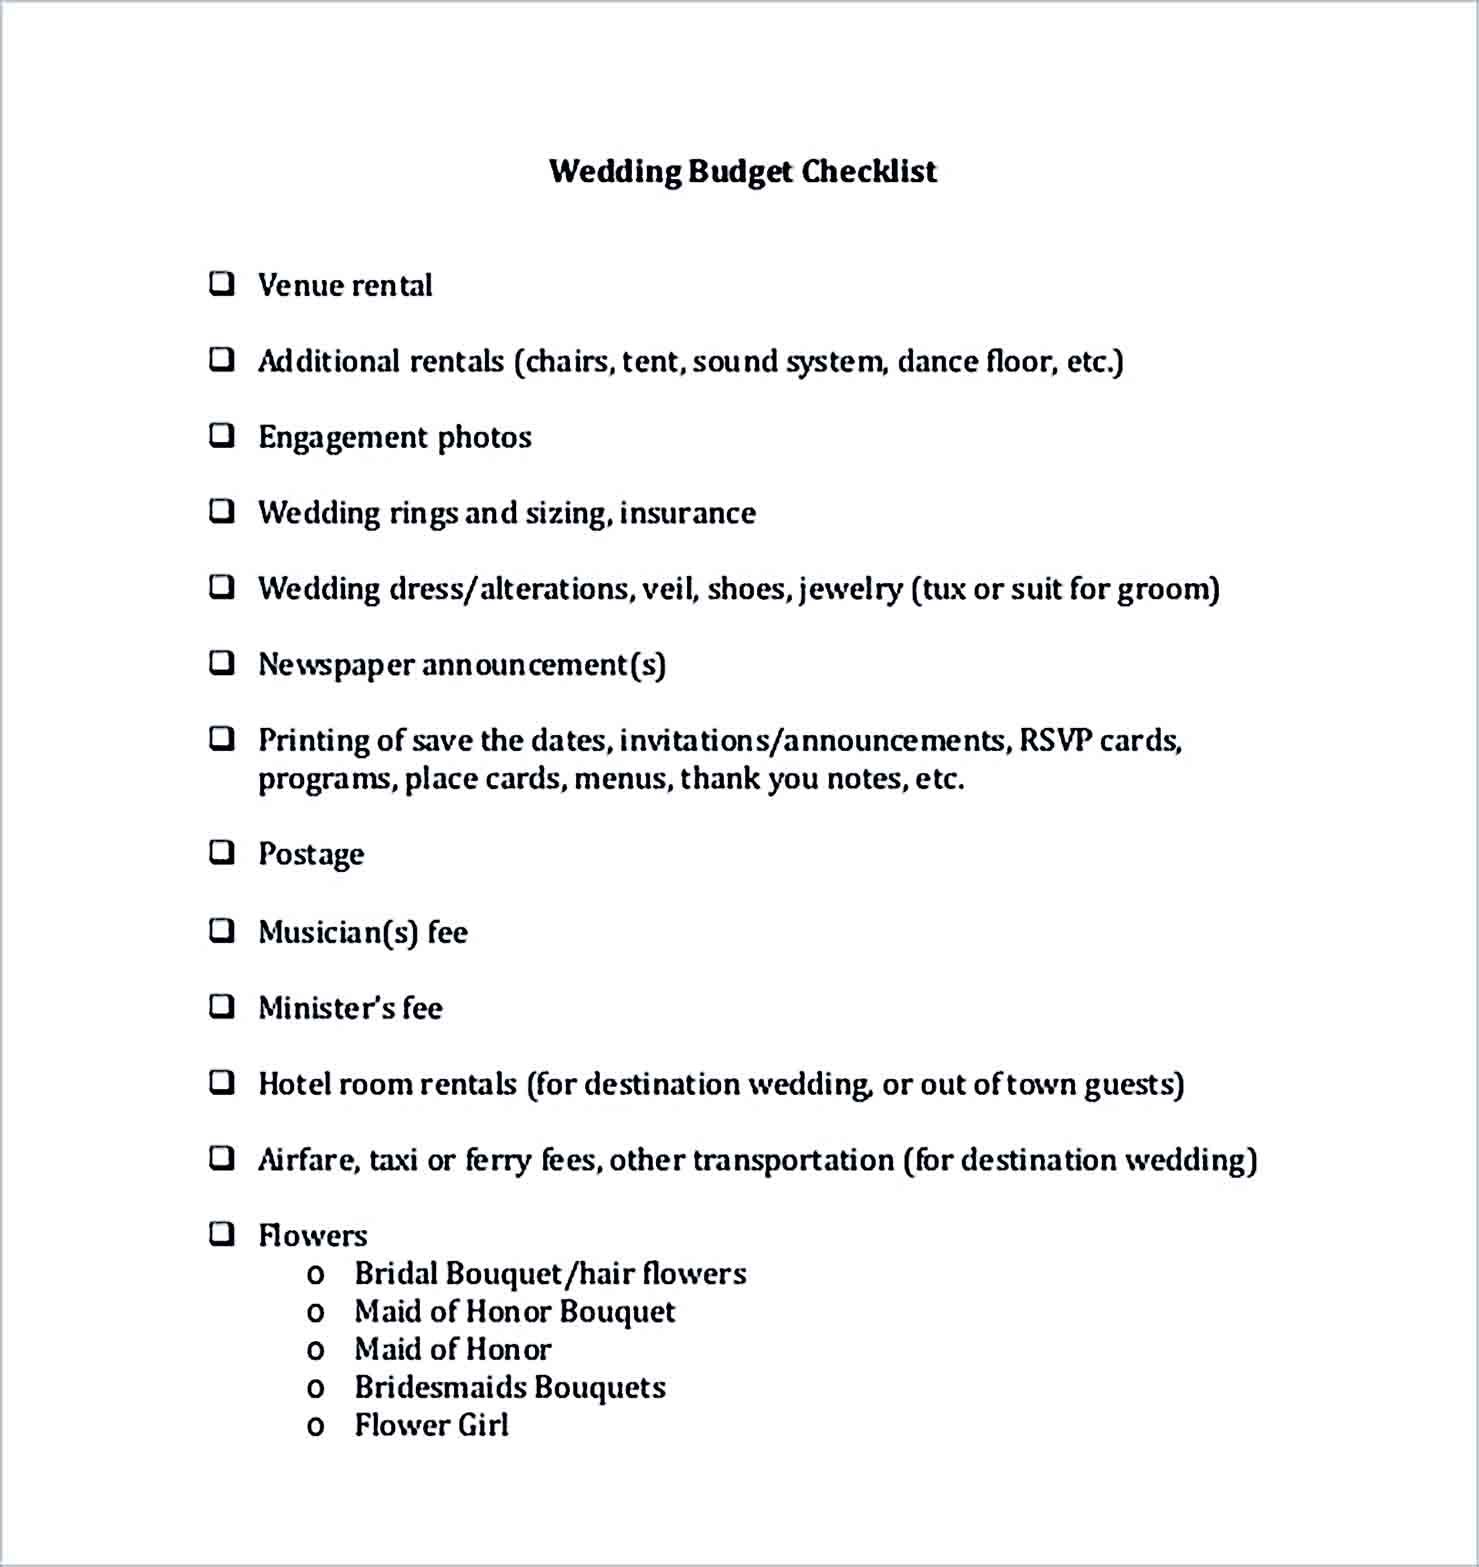 Sample Wedding Budget Checklist For